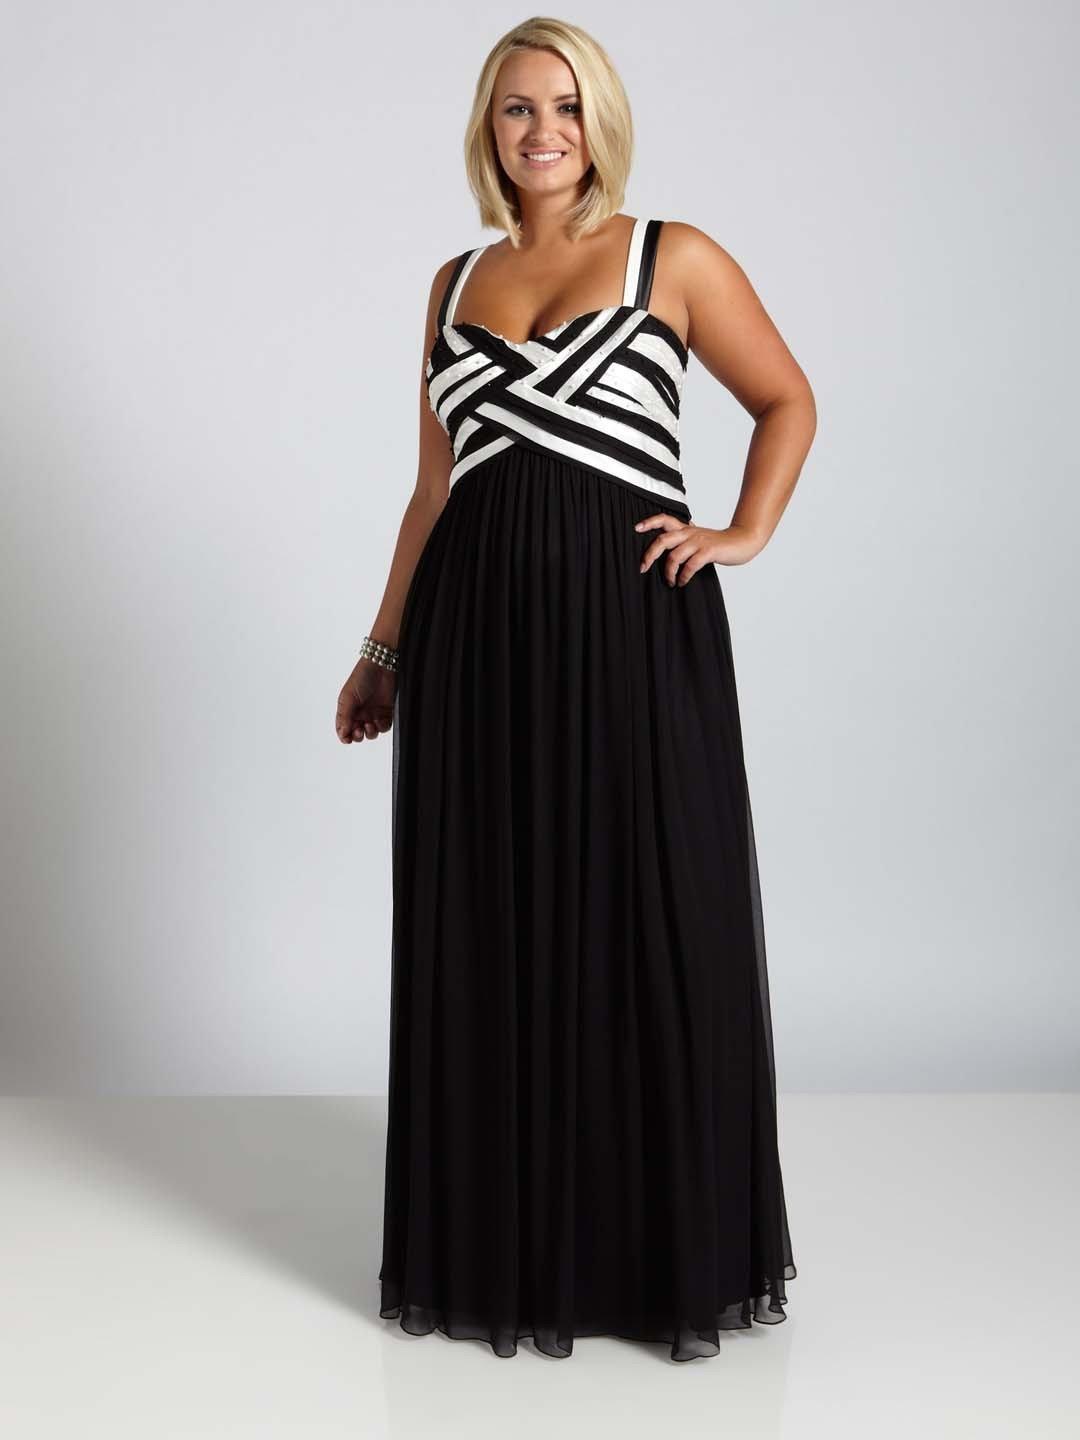 Plus size black party dresses uk